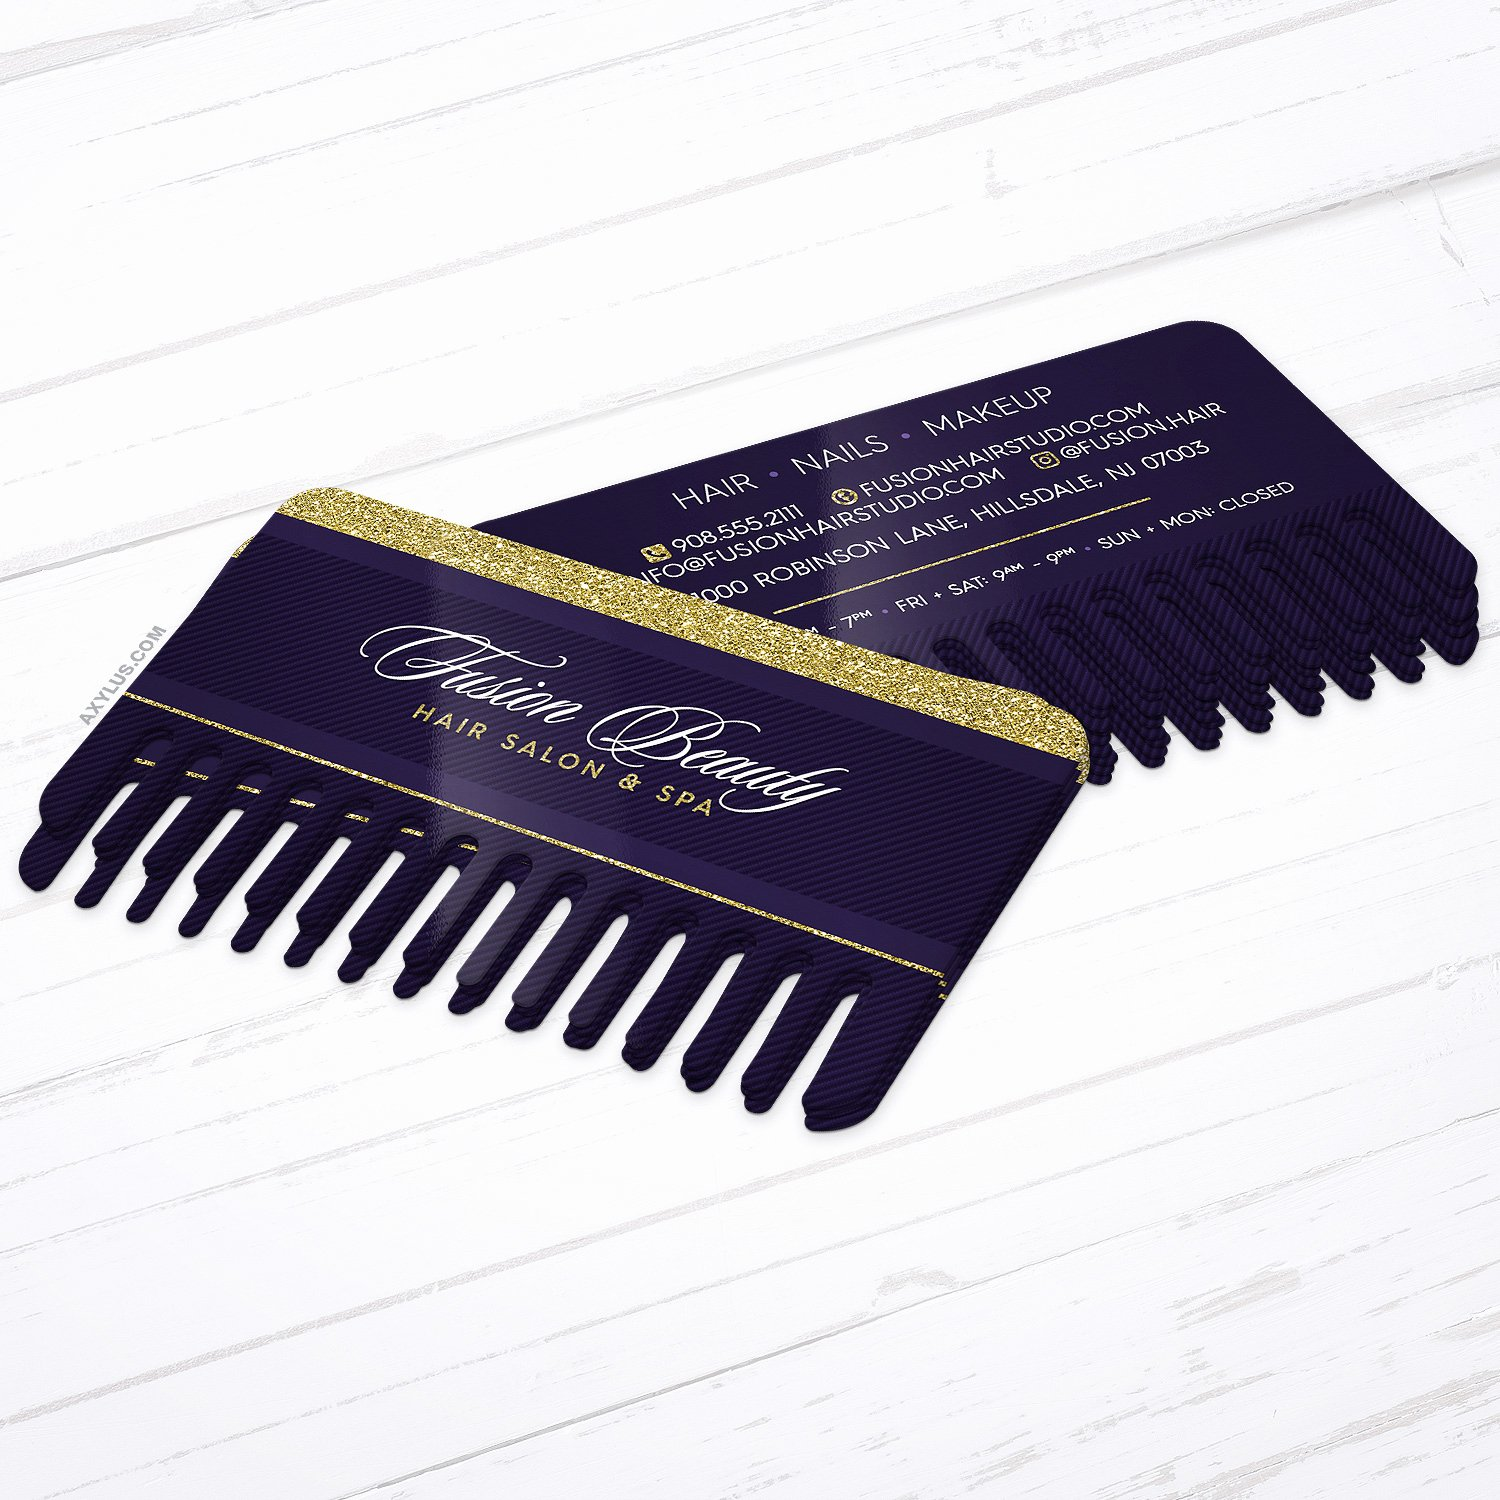 Unique Hair Stylist Business Cards Inspirational Unique Hair Stylist Business Cards • B Shaped Die Cut